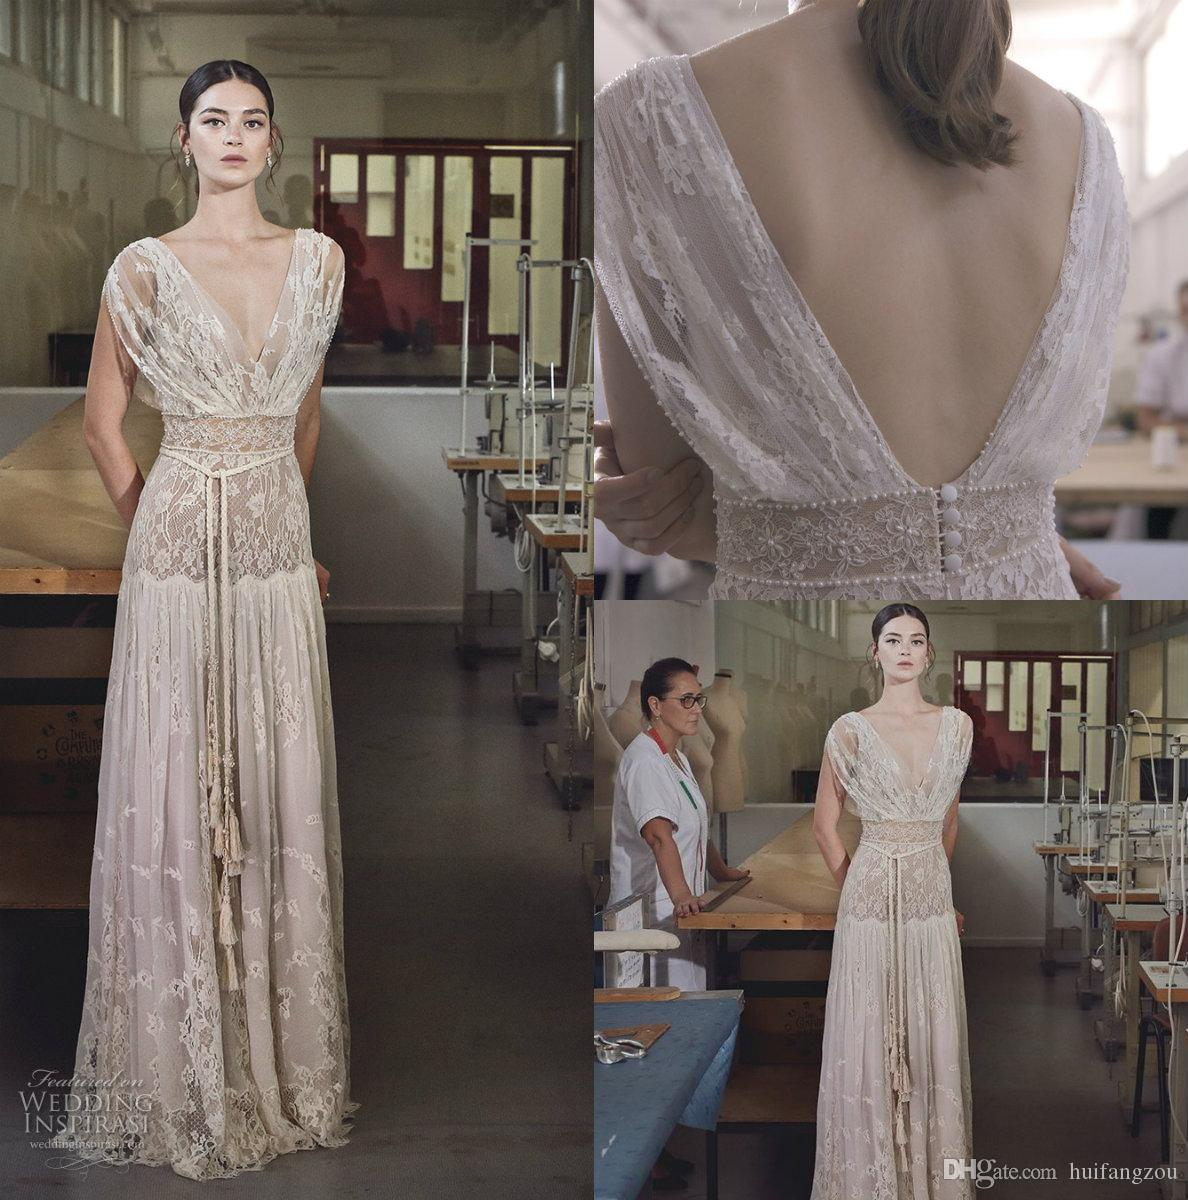 ed38476989f Discount 2018 Collection Lihi Hod Boho Wedding Dresses Fashion Lace V Neck  Cap Sleeve Elegant 2017 Country Bohemian Beach Bridal Gowns Wedding  Collection ...